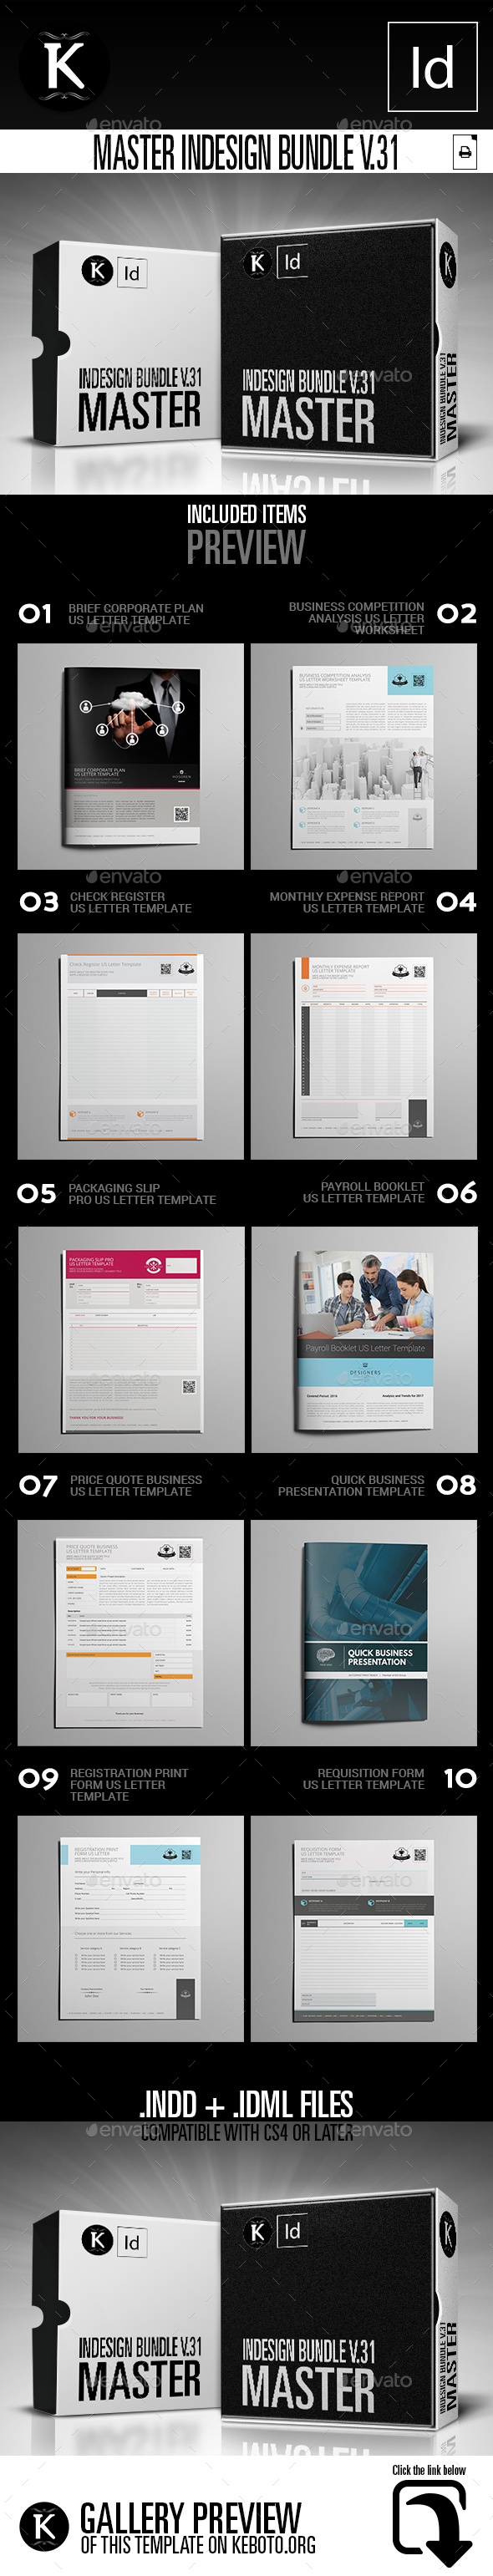 GraphicRiver Master inDesign Bundle v.31 21071365